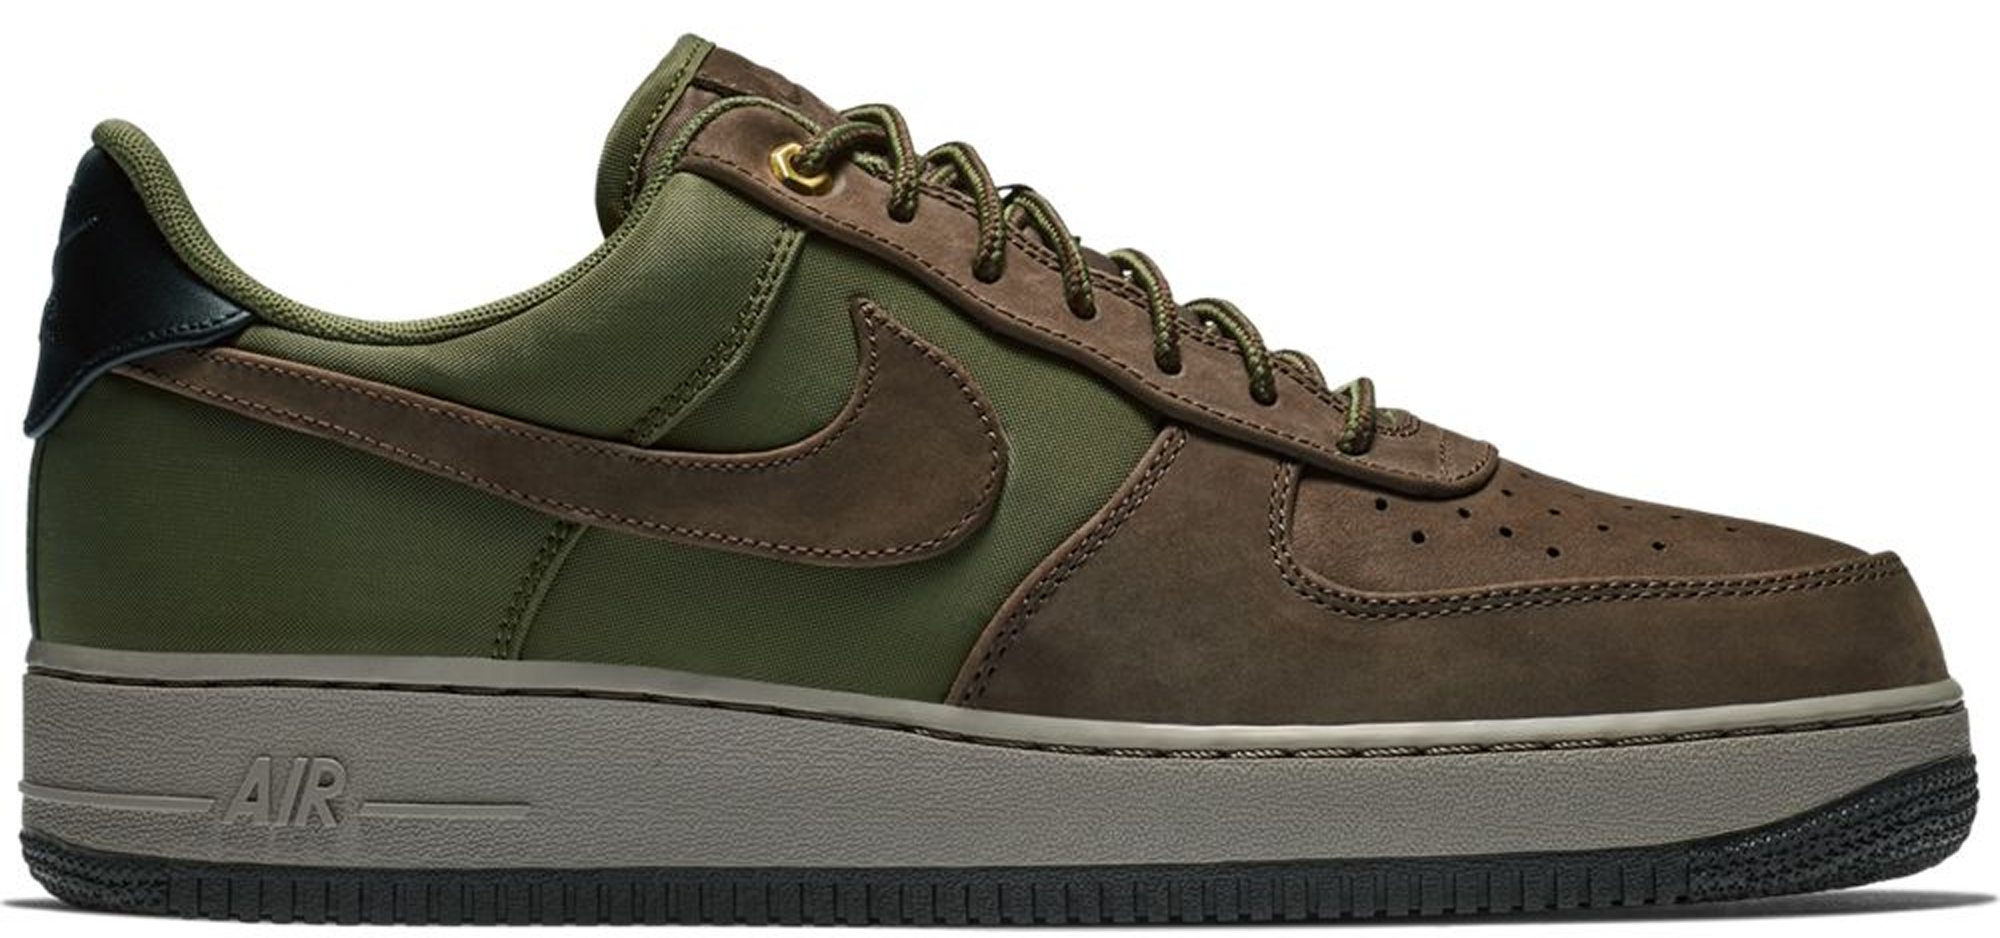 Air Force 1 Low Premier Beef and Broccoli